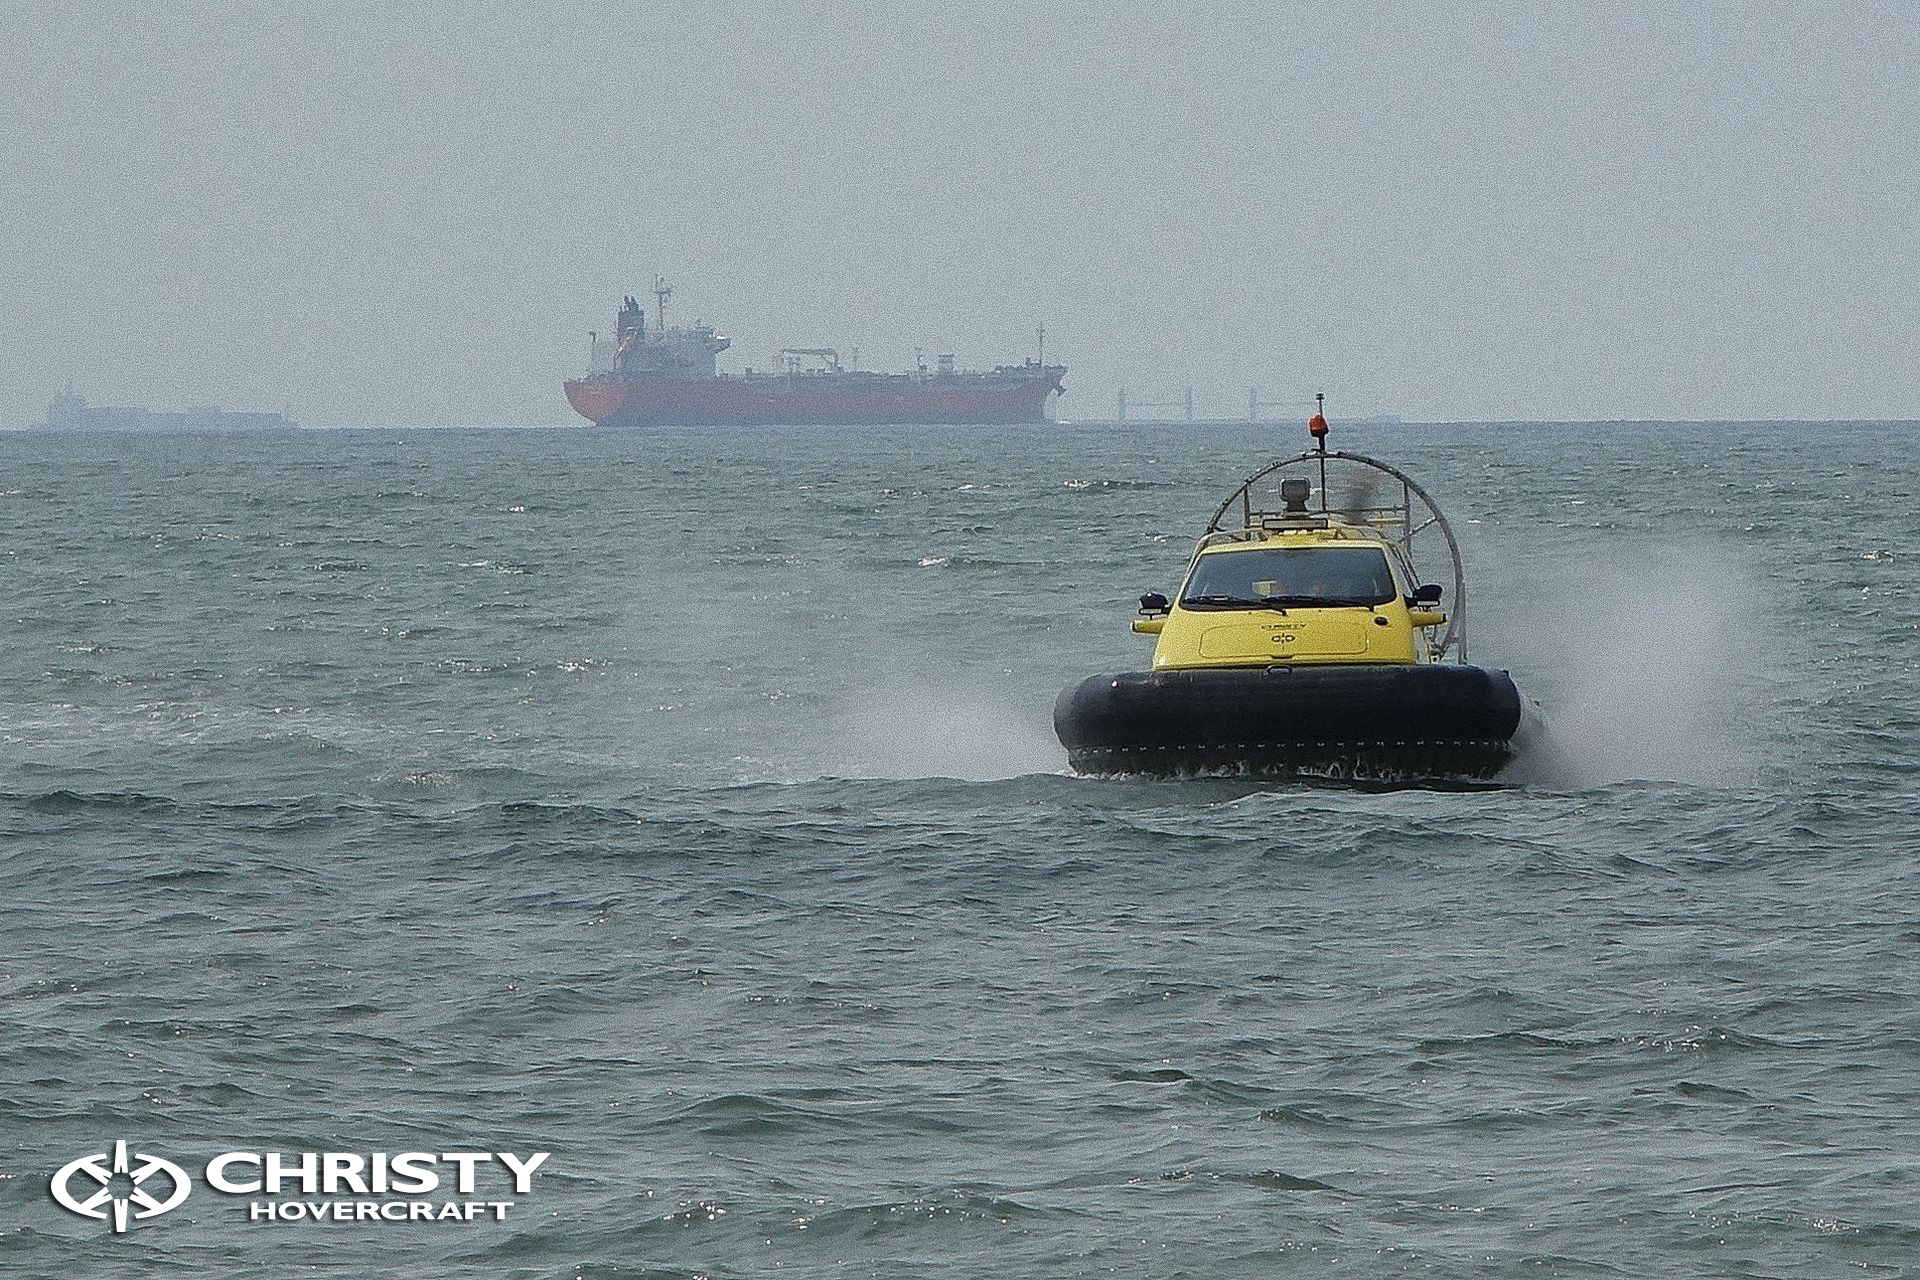 hovercraft-christy-5_7series-26.jpg | фото №39